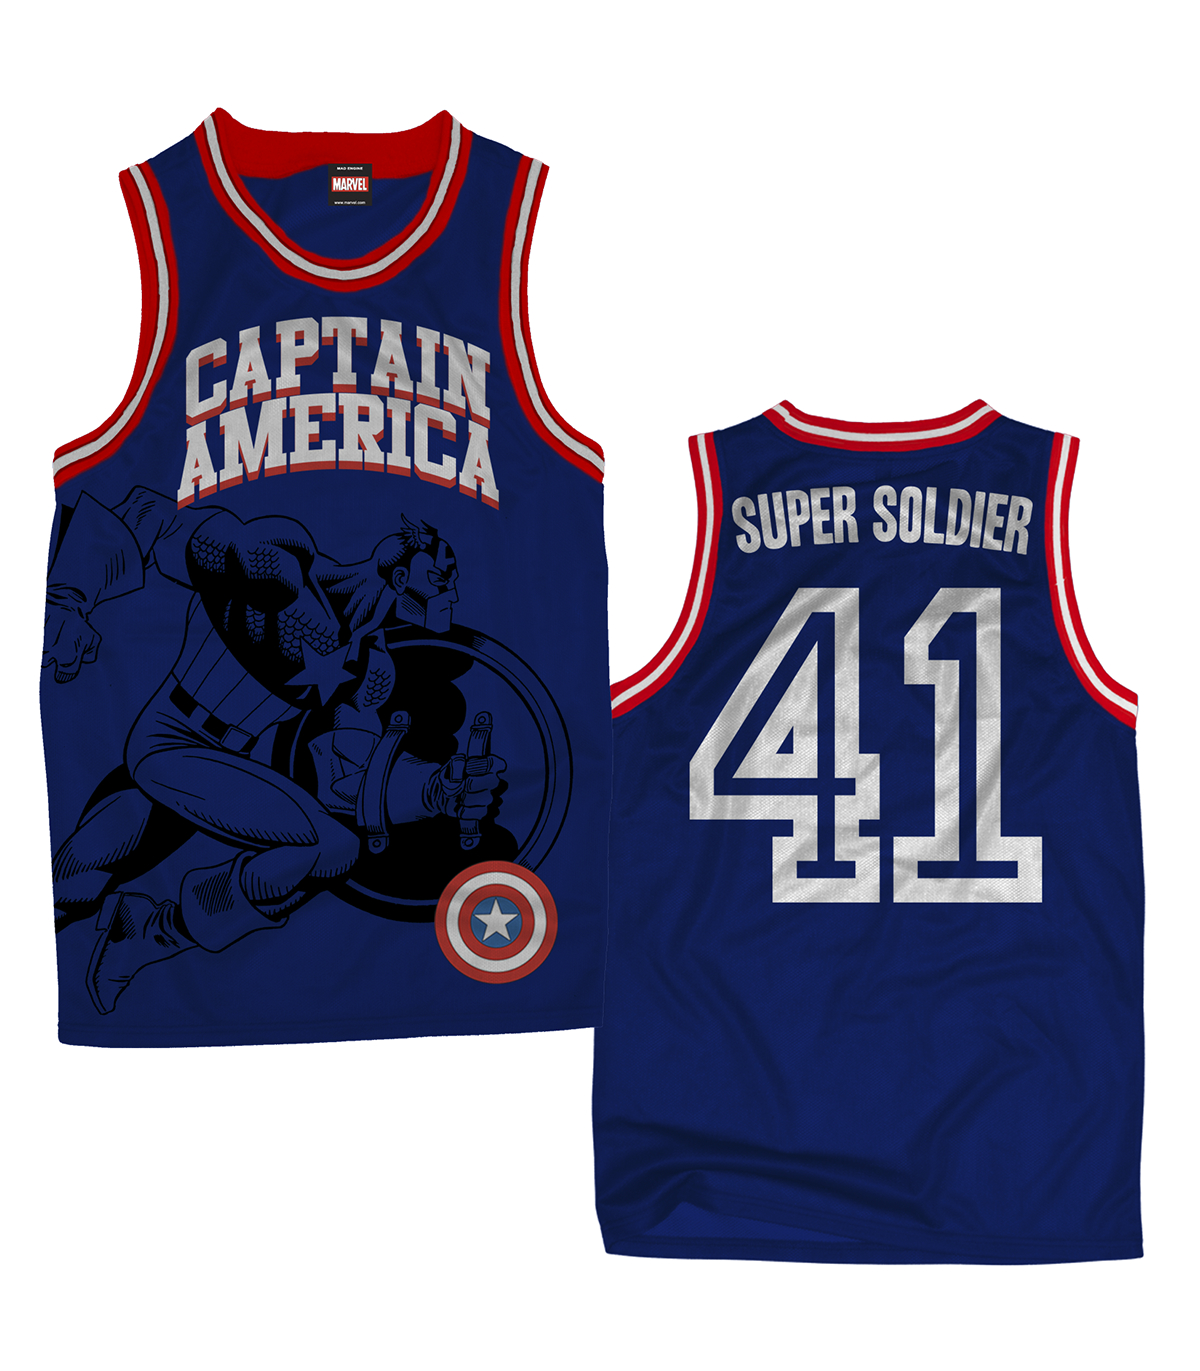 CAPTAIN AMERICA WE ARE #1 BASKETBALL JERSEY XL